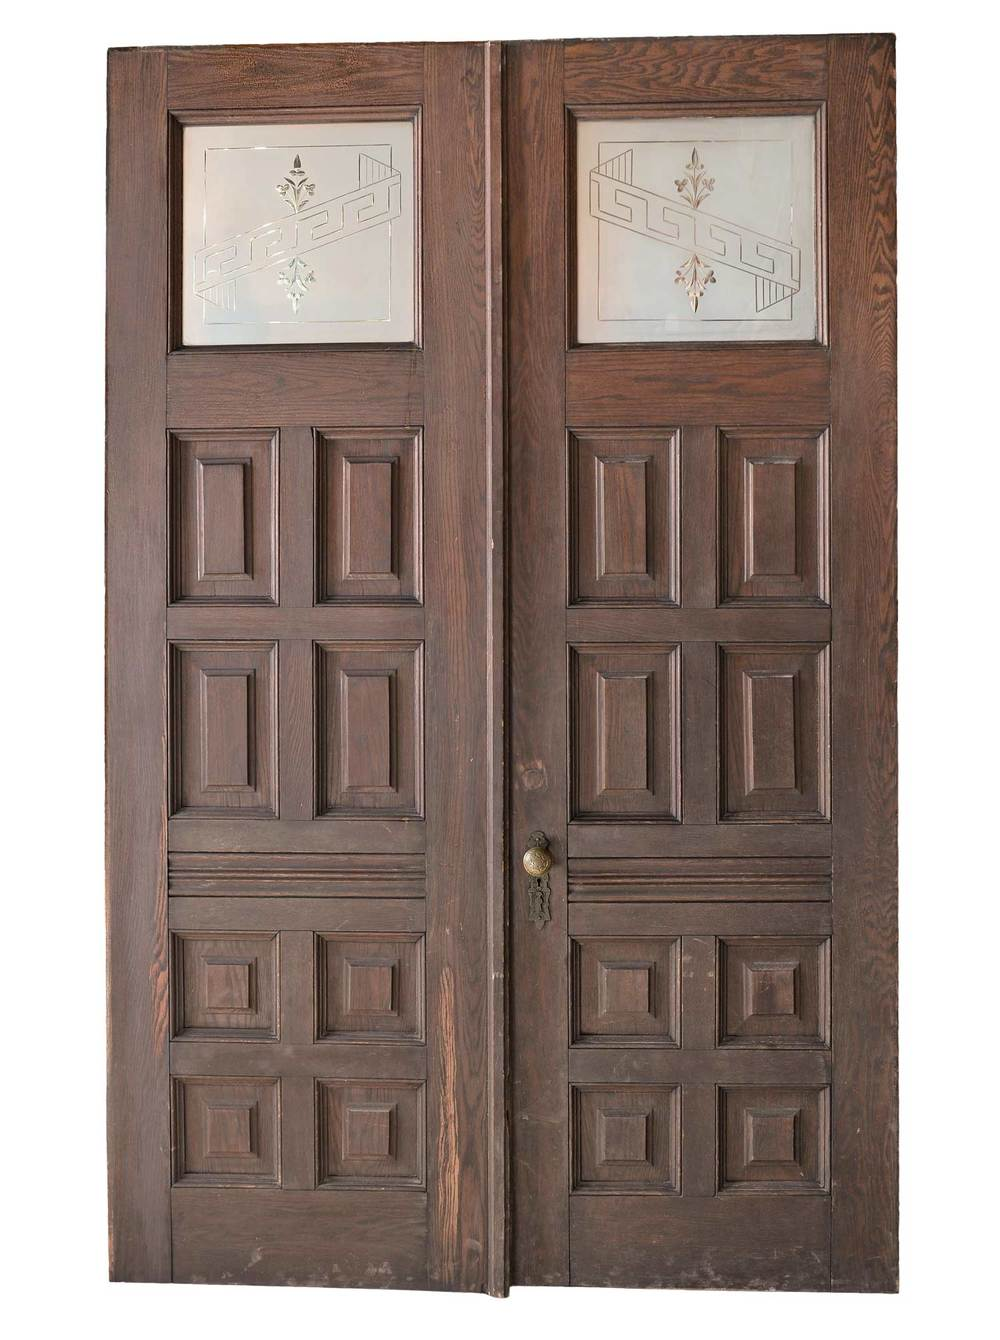 46019 Double Doors With Etched Glass